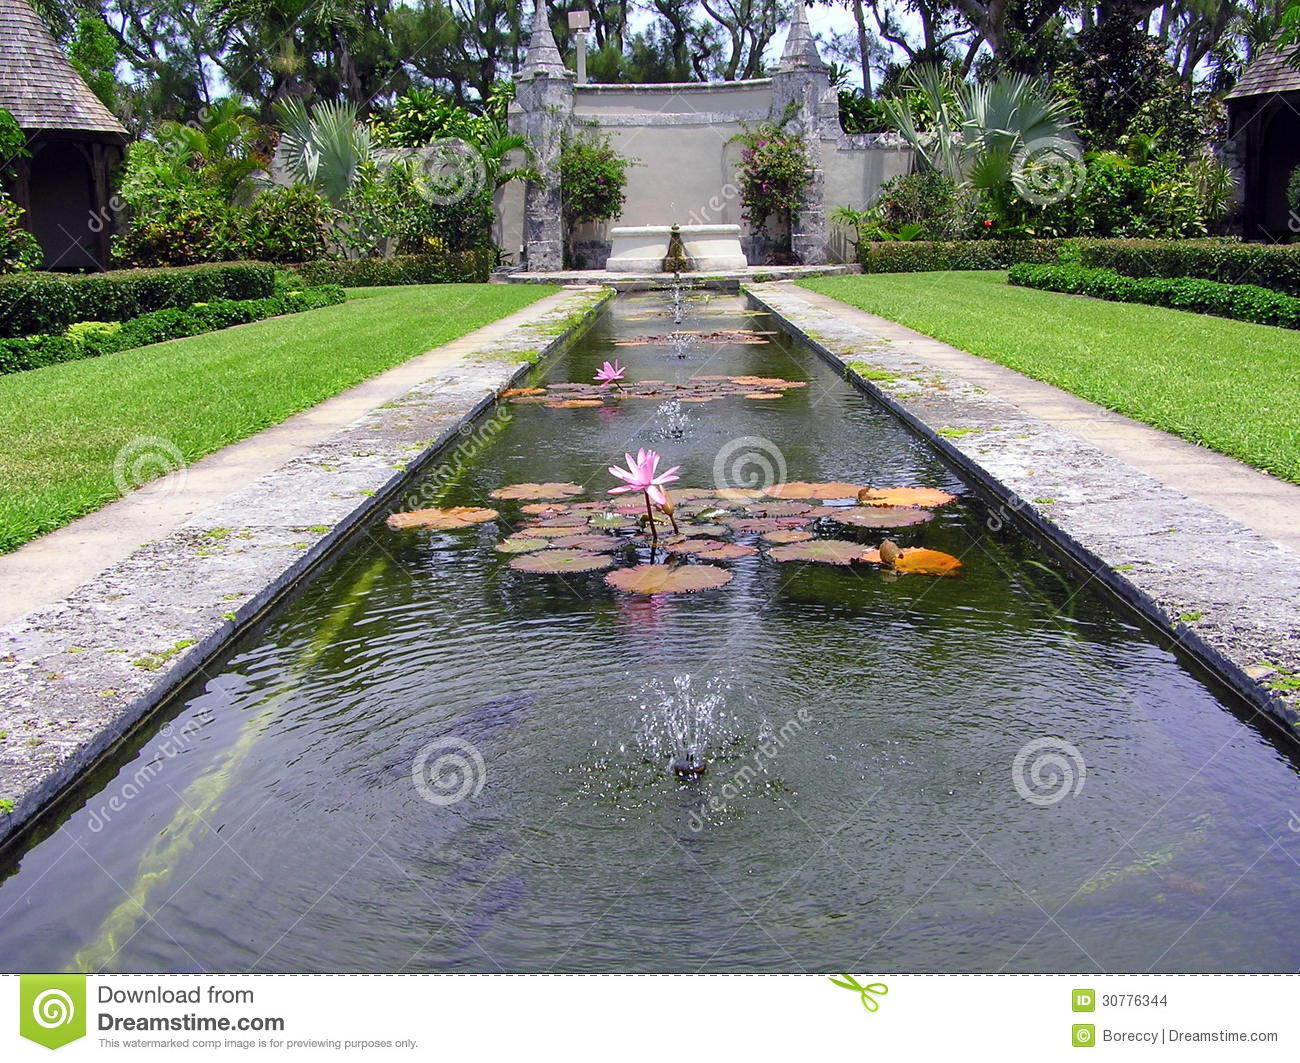 Cluett memorial gardens at bethesda by the sea palm beach stock photo image 30776344 for The fountains palm beach gardens